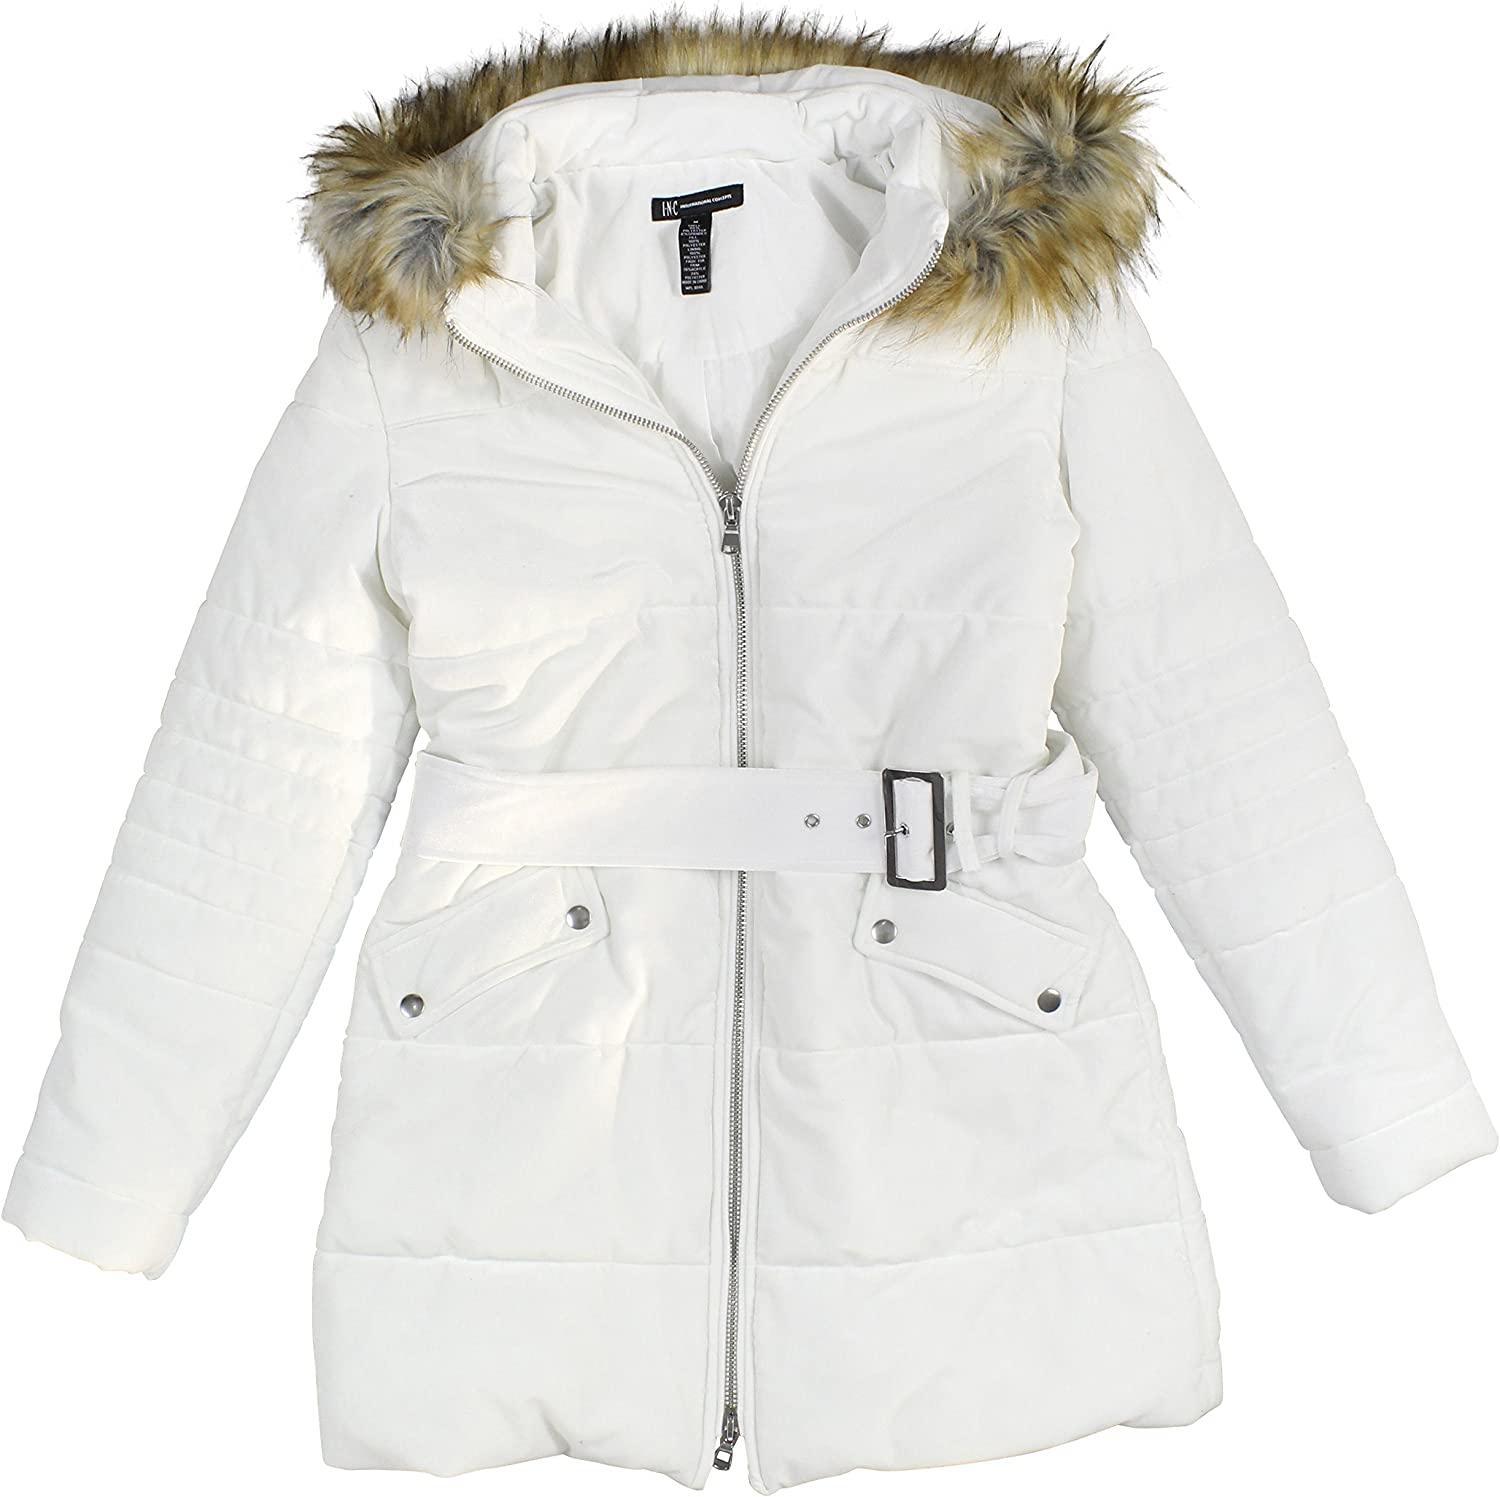 INC International Concepts Womens Hooded Velvet Puffer Coat with Faux-Fur Trim Large Washed White